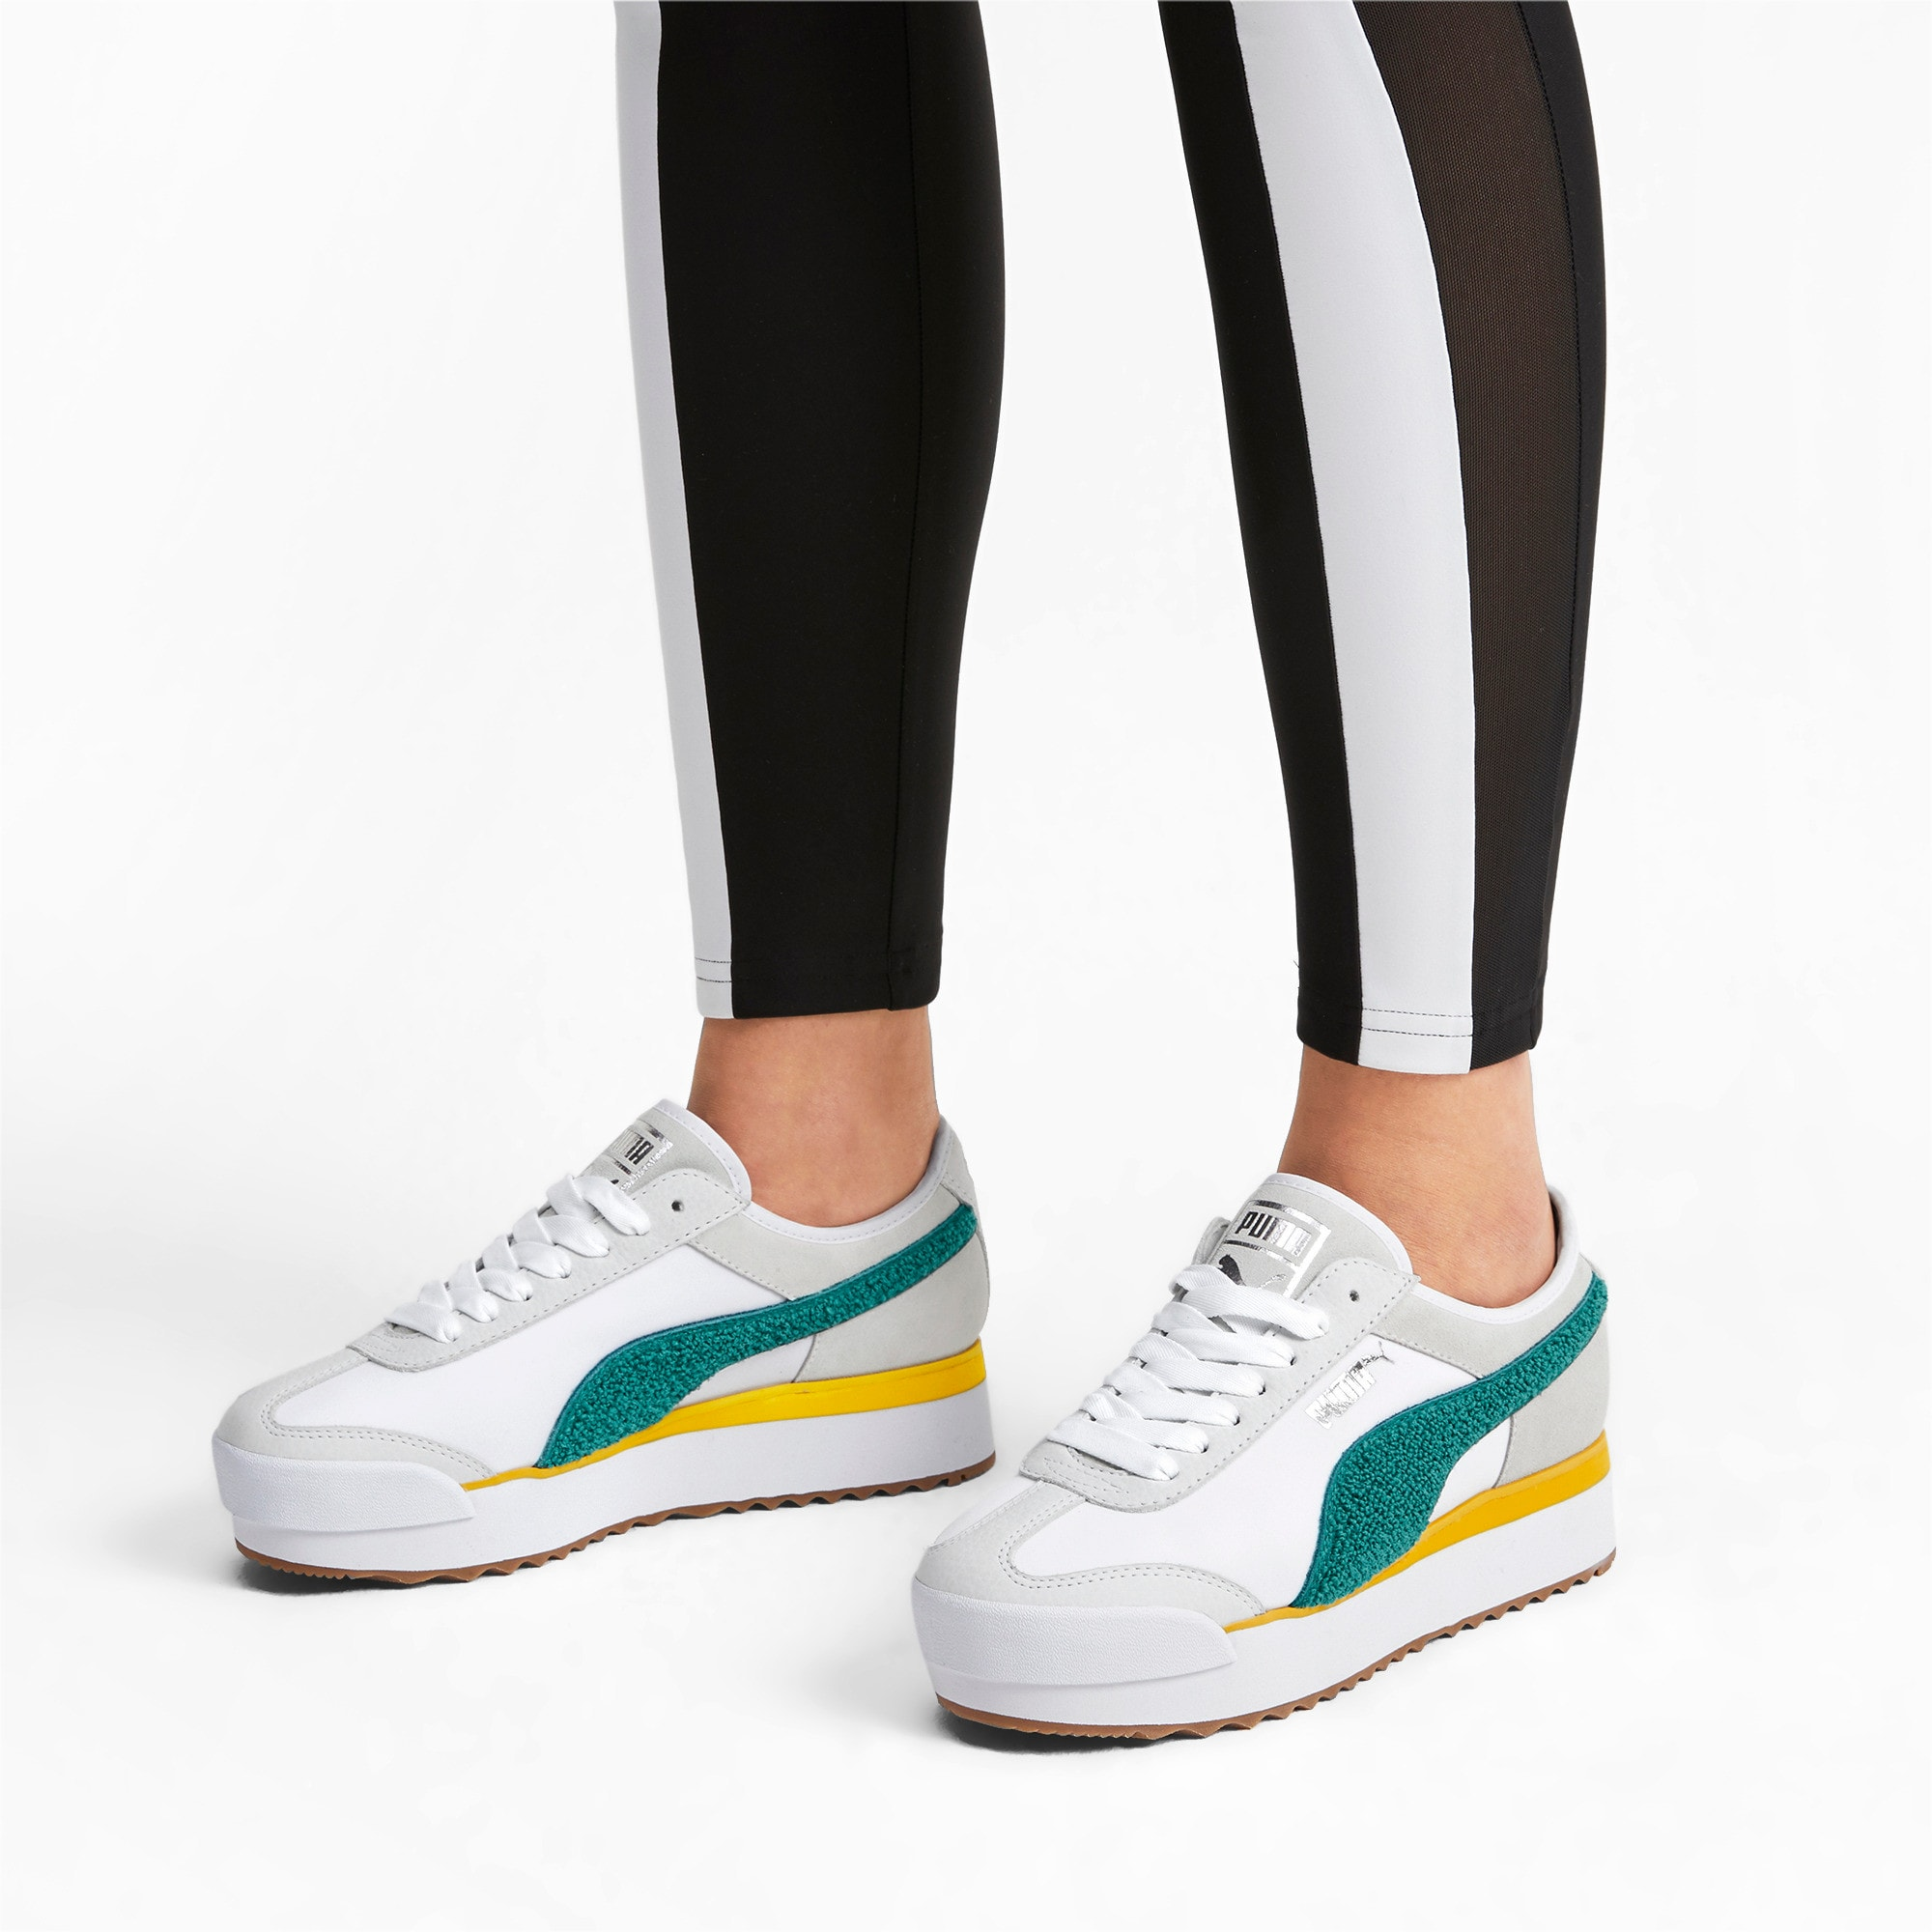 Thumbnail 2 of Roma Amor Heritage Women's Sneakers, Puma White-Teal Green, medium